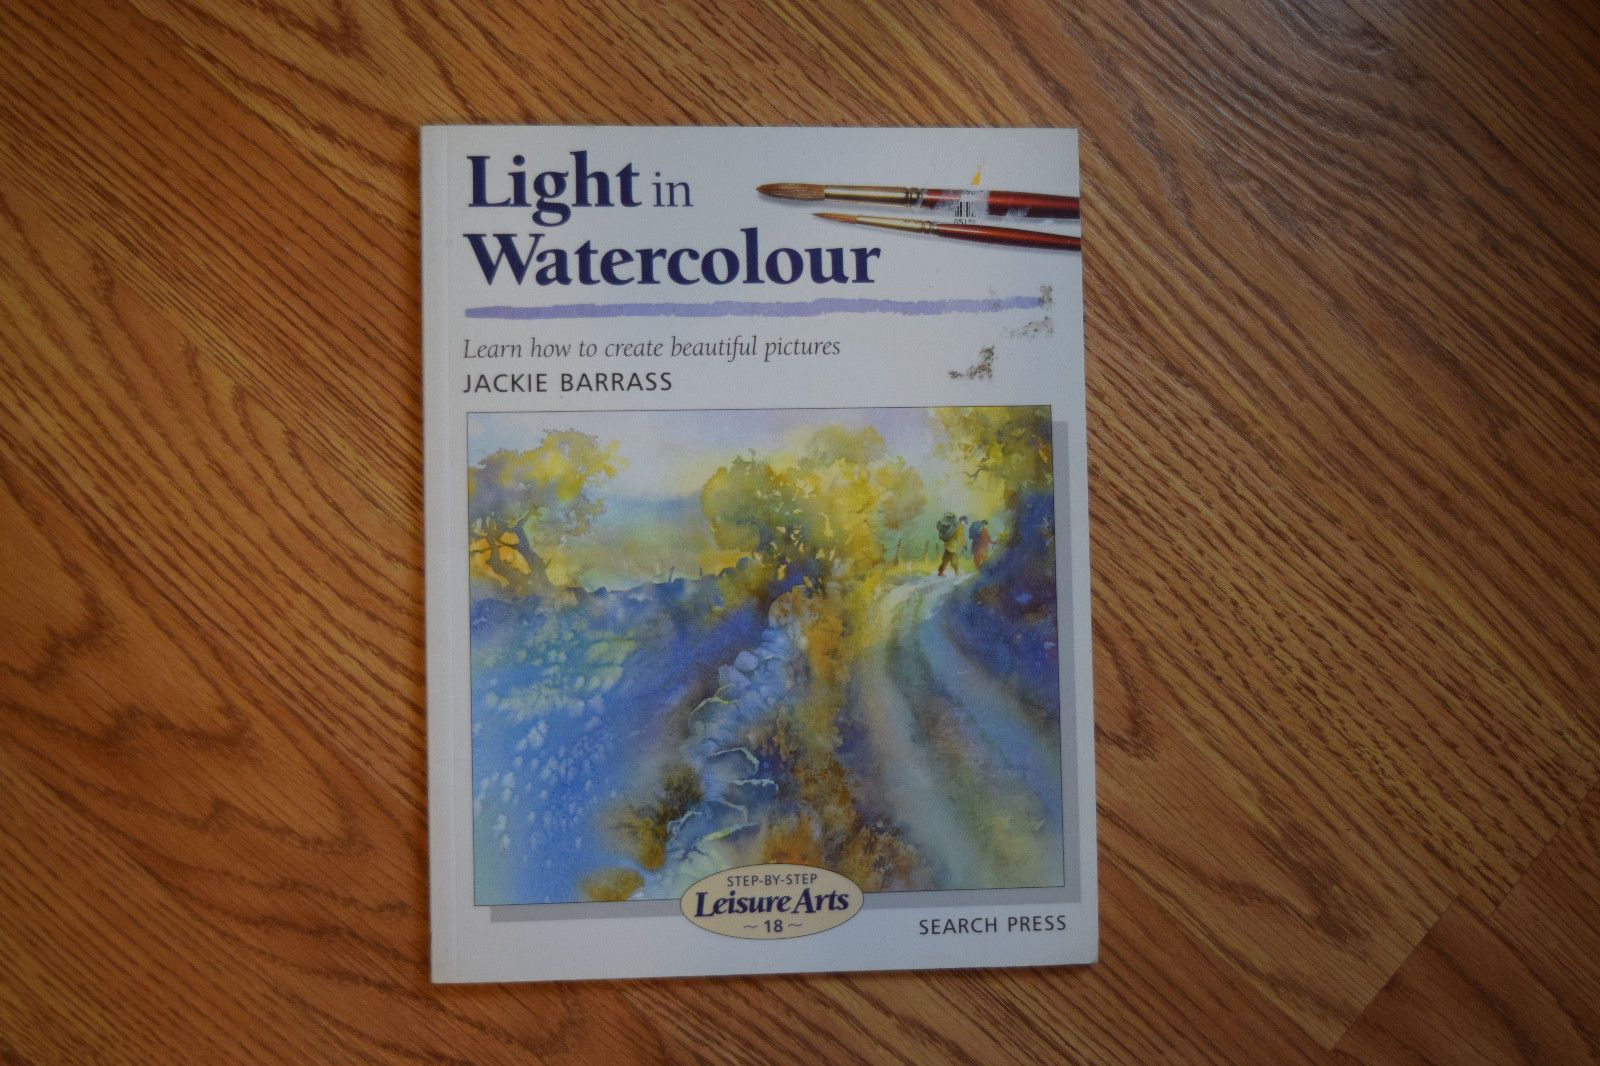 Watercolor books by search press - Light In Watercolor By Jackie Barrass